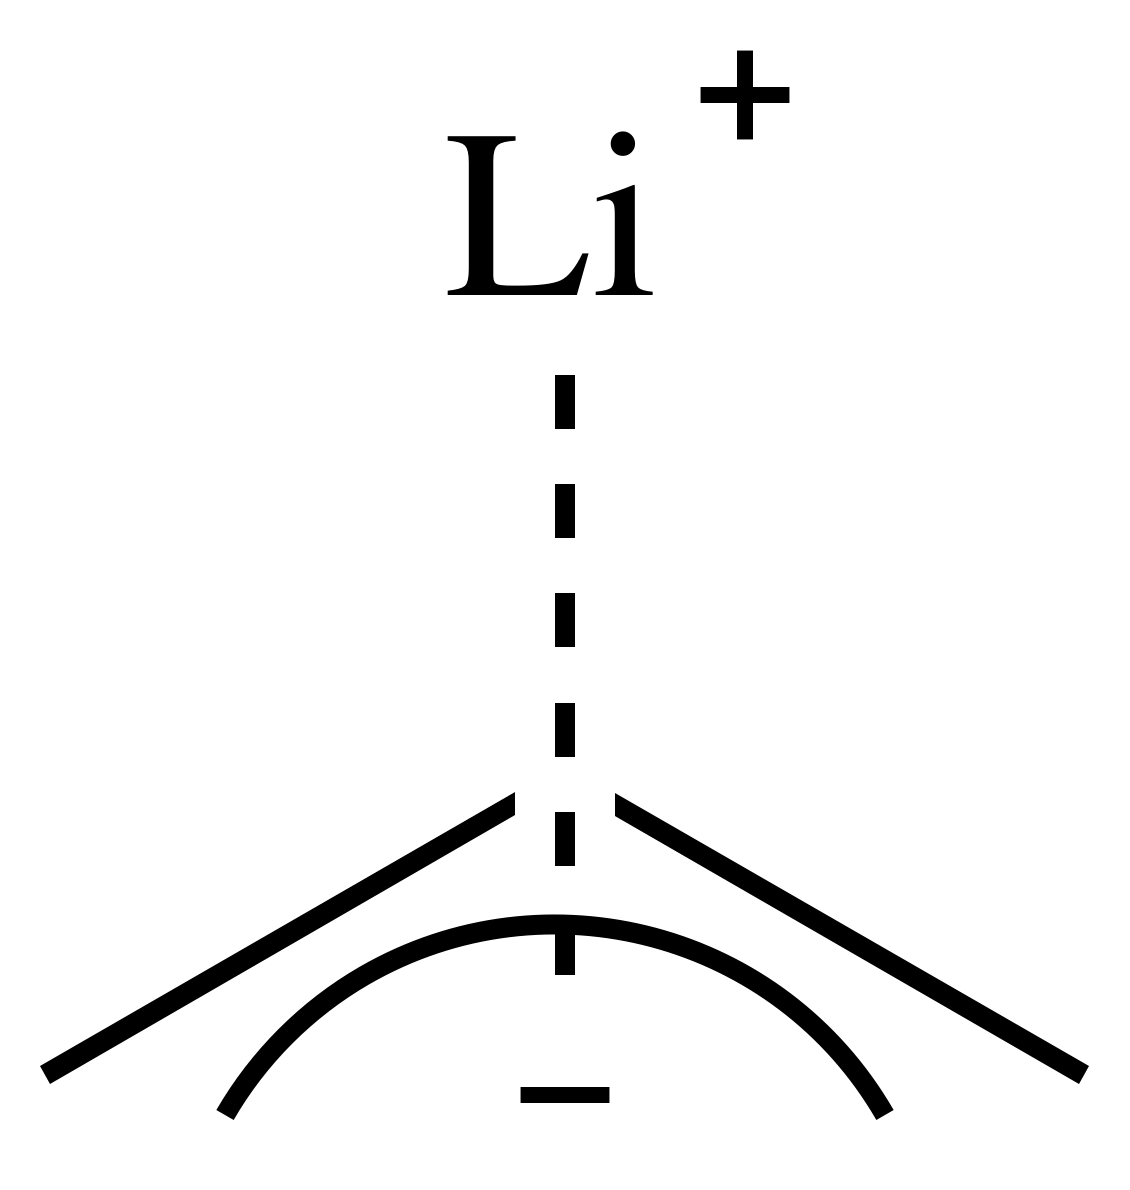 lewis diagram co2 what is a scale wiki organolithium reagent upcscavenger